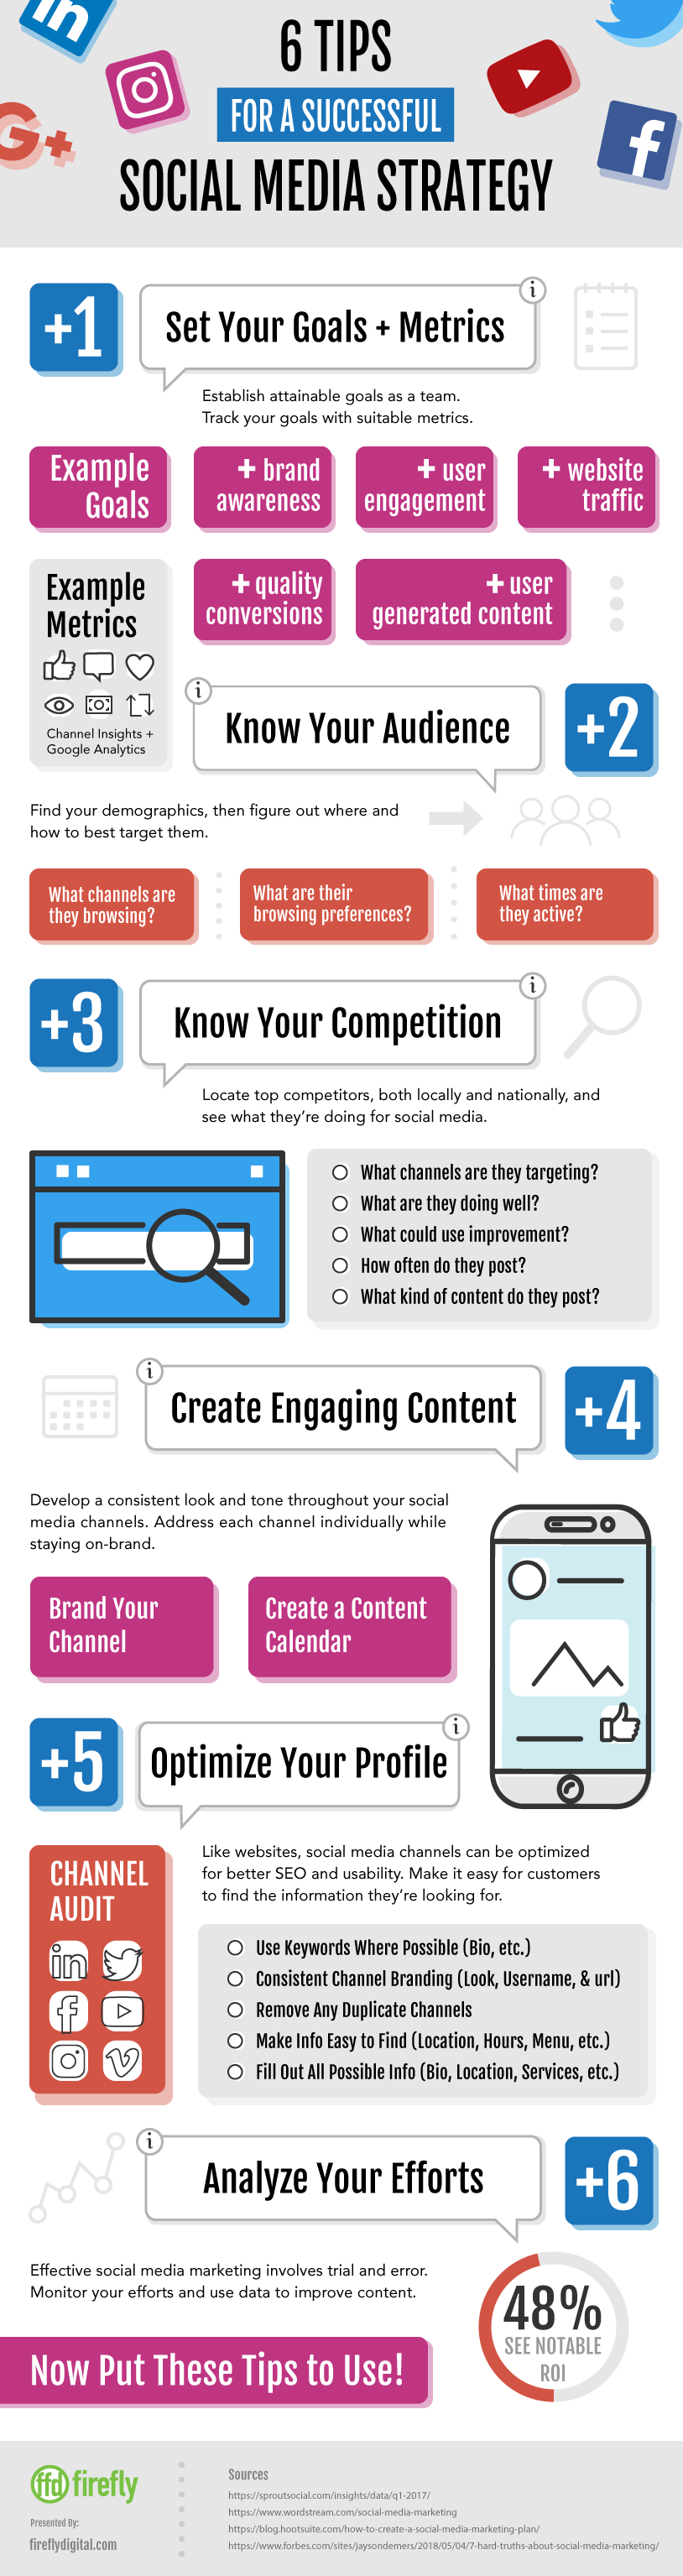 Infographic about social media marketing strategy and helpful tips to making your social media successful